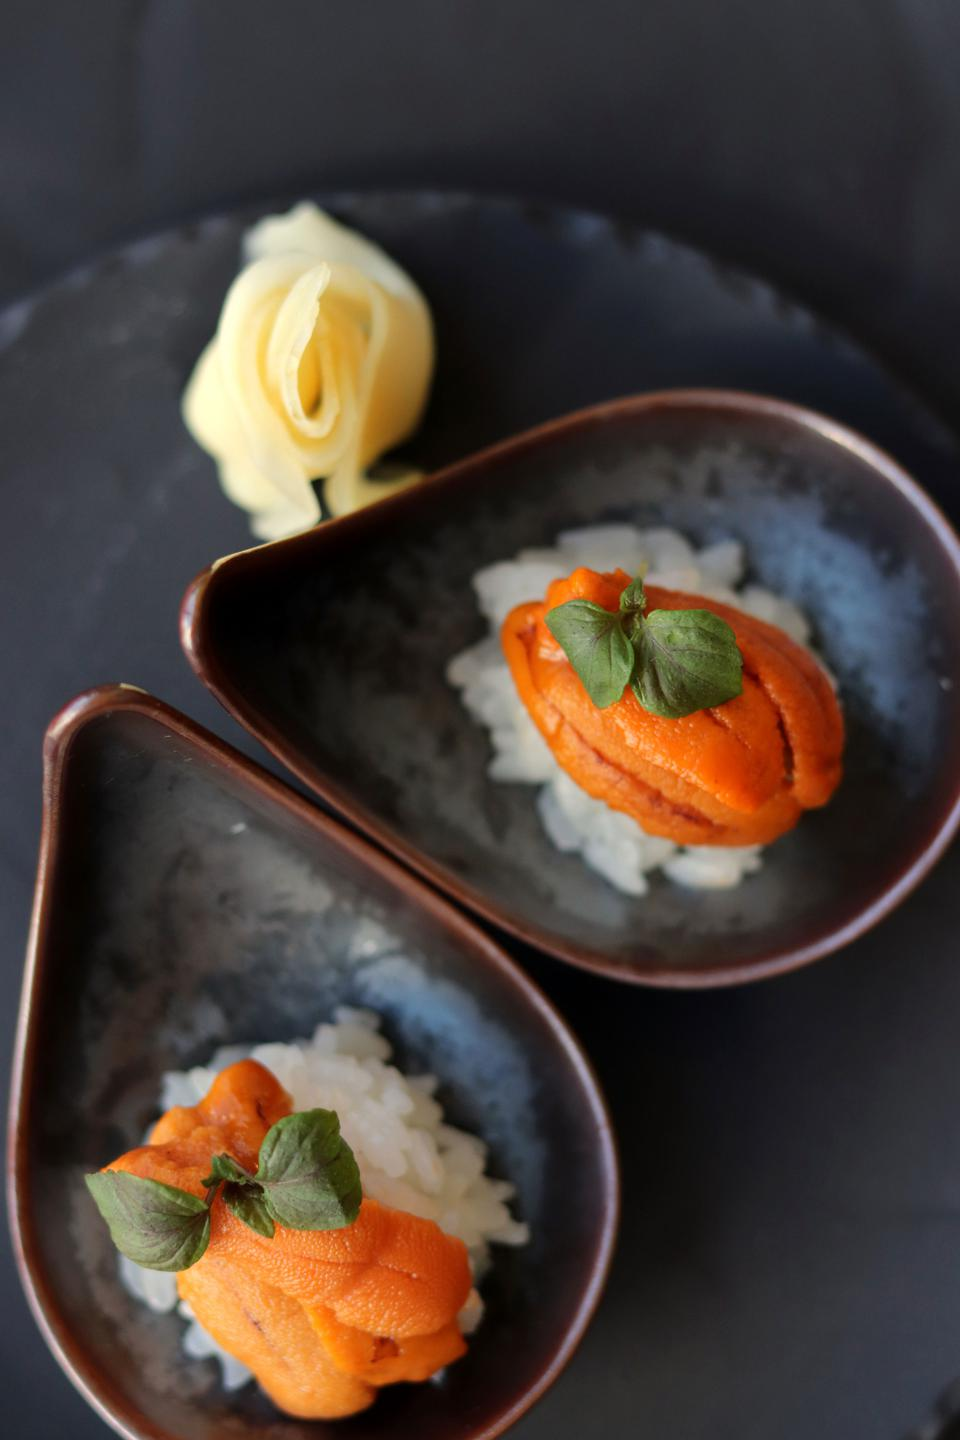 Uni roe served atop rice in a simple and delicious dish.